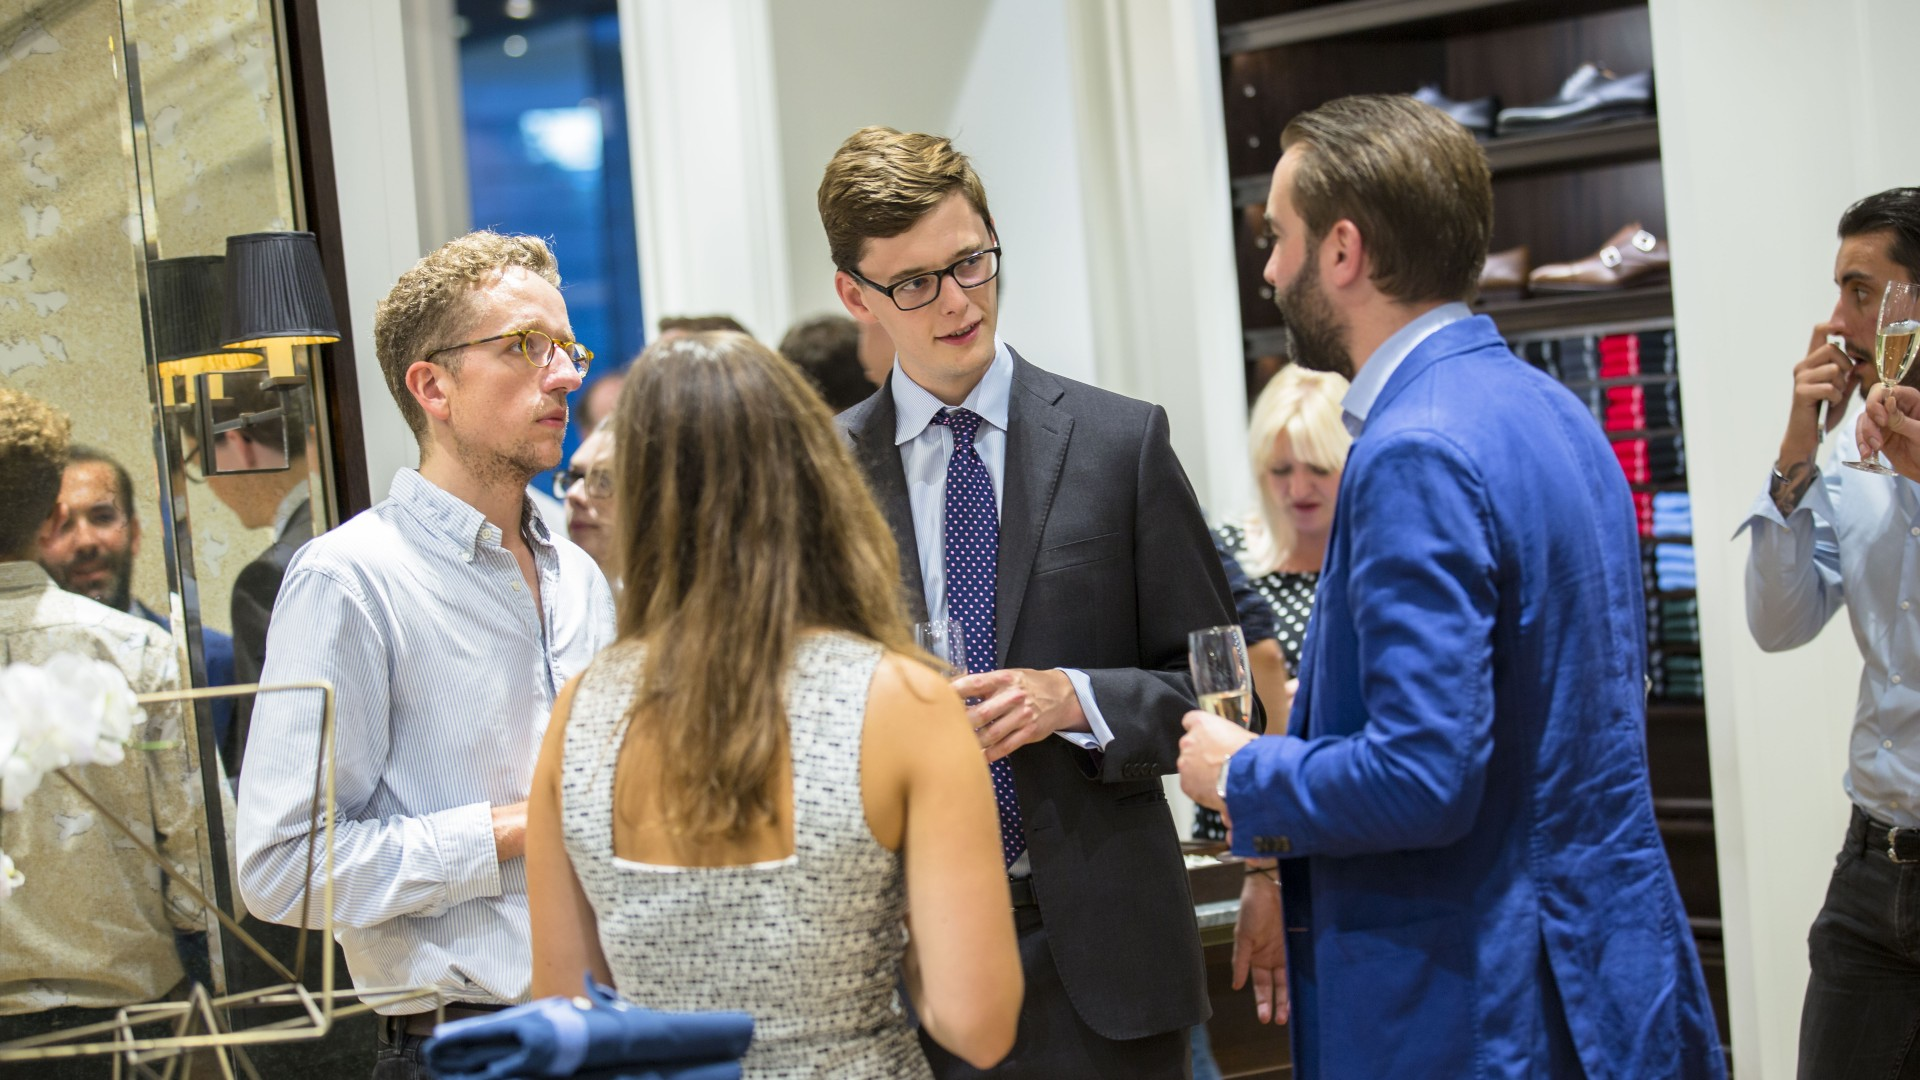 Hackett x Square Mile event